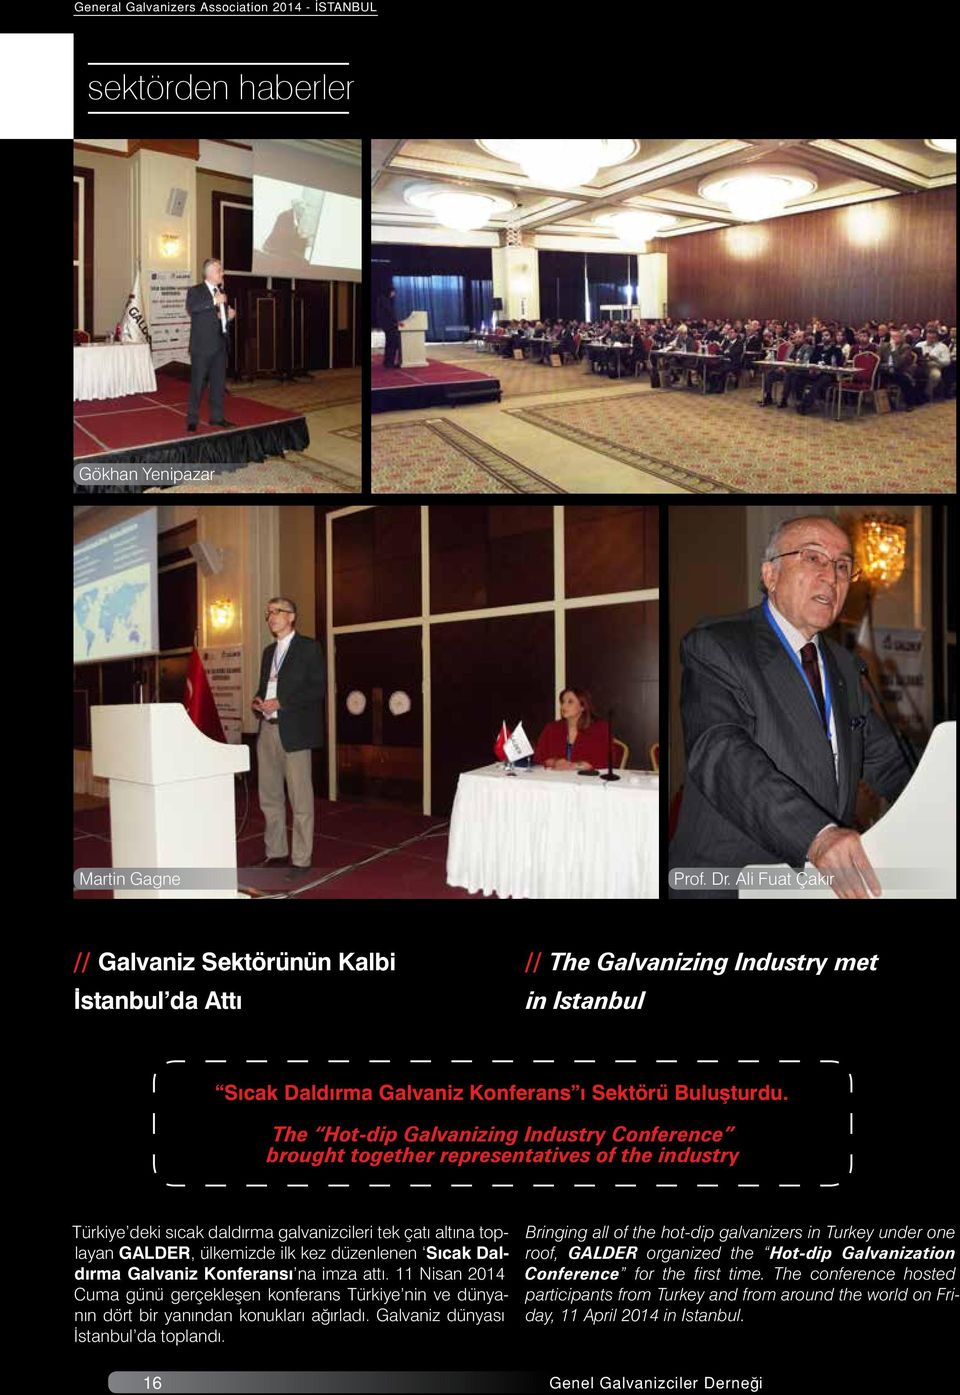 The Hot-dip Galvanizing Industry Conference brought together representatives of the industry Türkiye deki sıcak daldırma galvanizcileri tek çatı altına toplayan GALDER, ülkemizde ilk kez düzenlenen